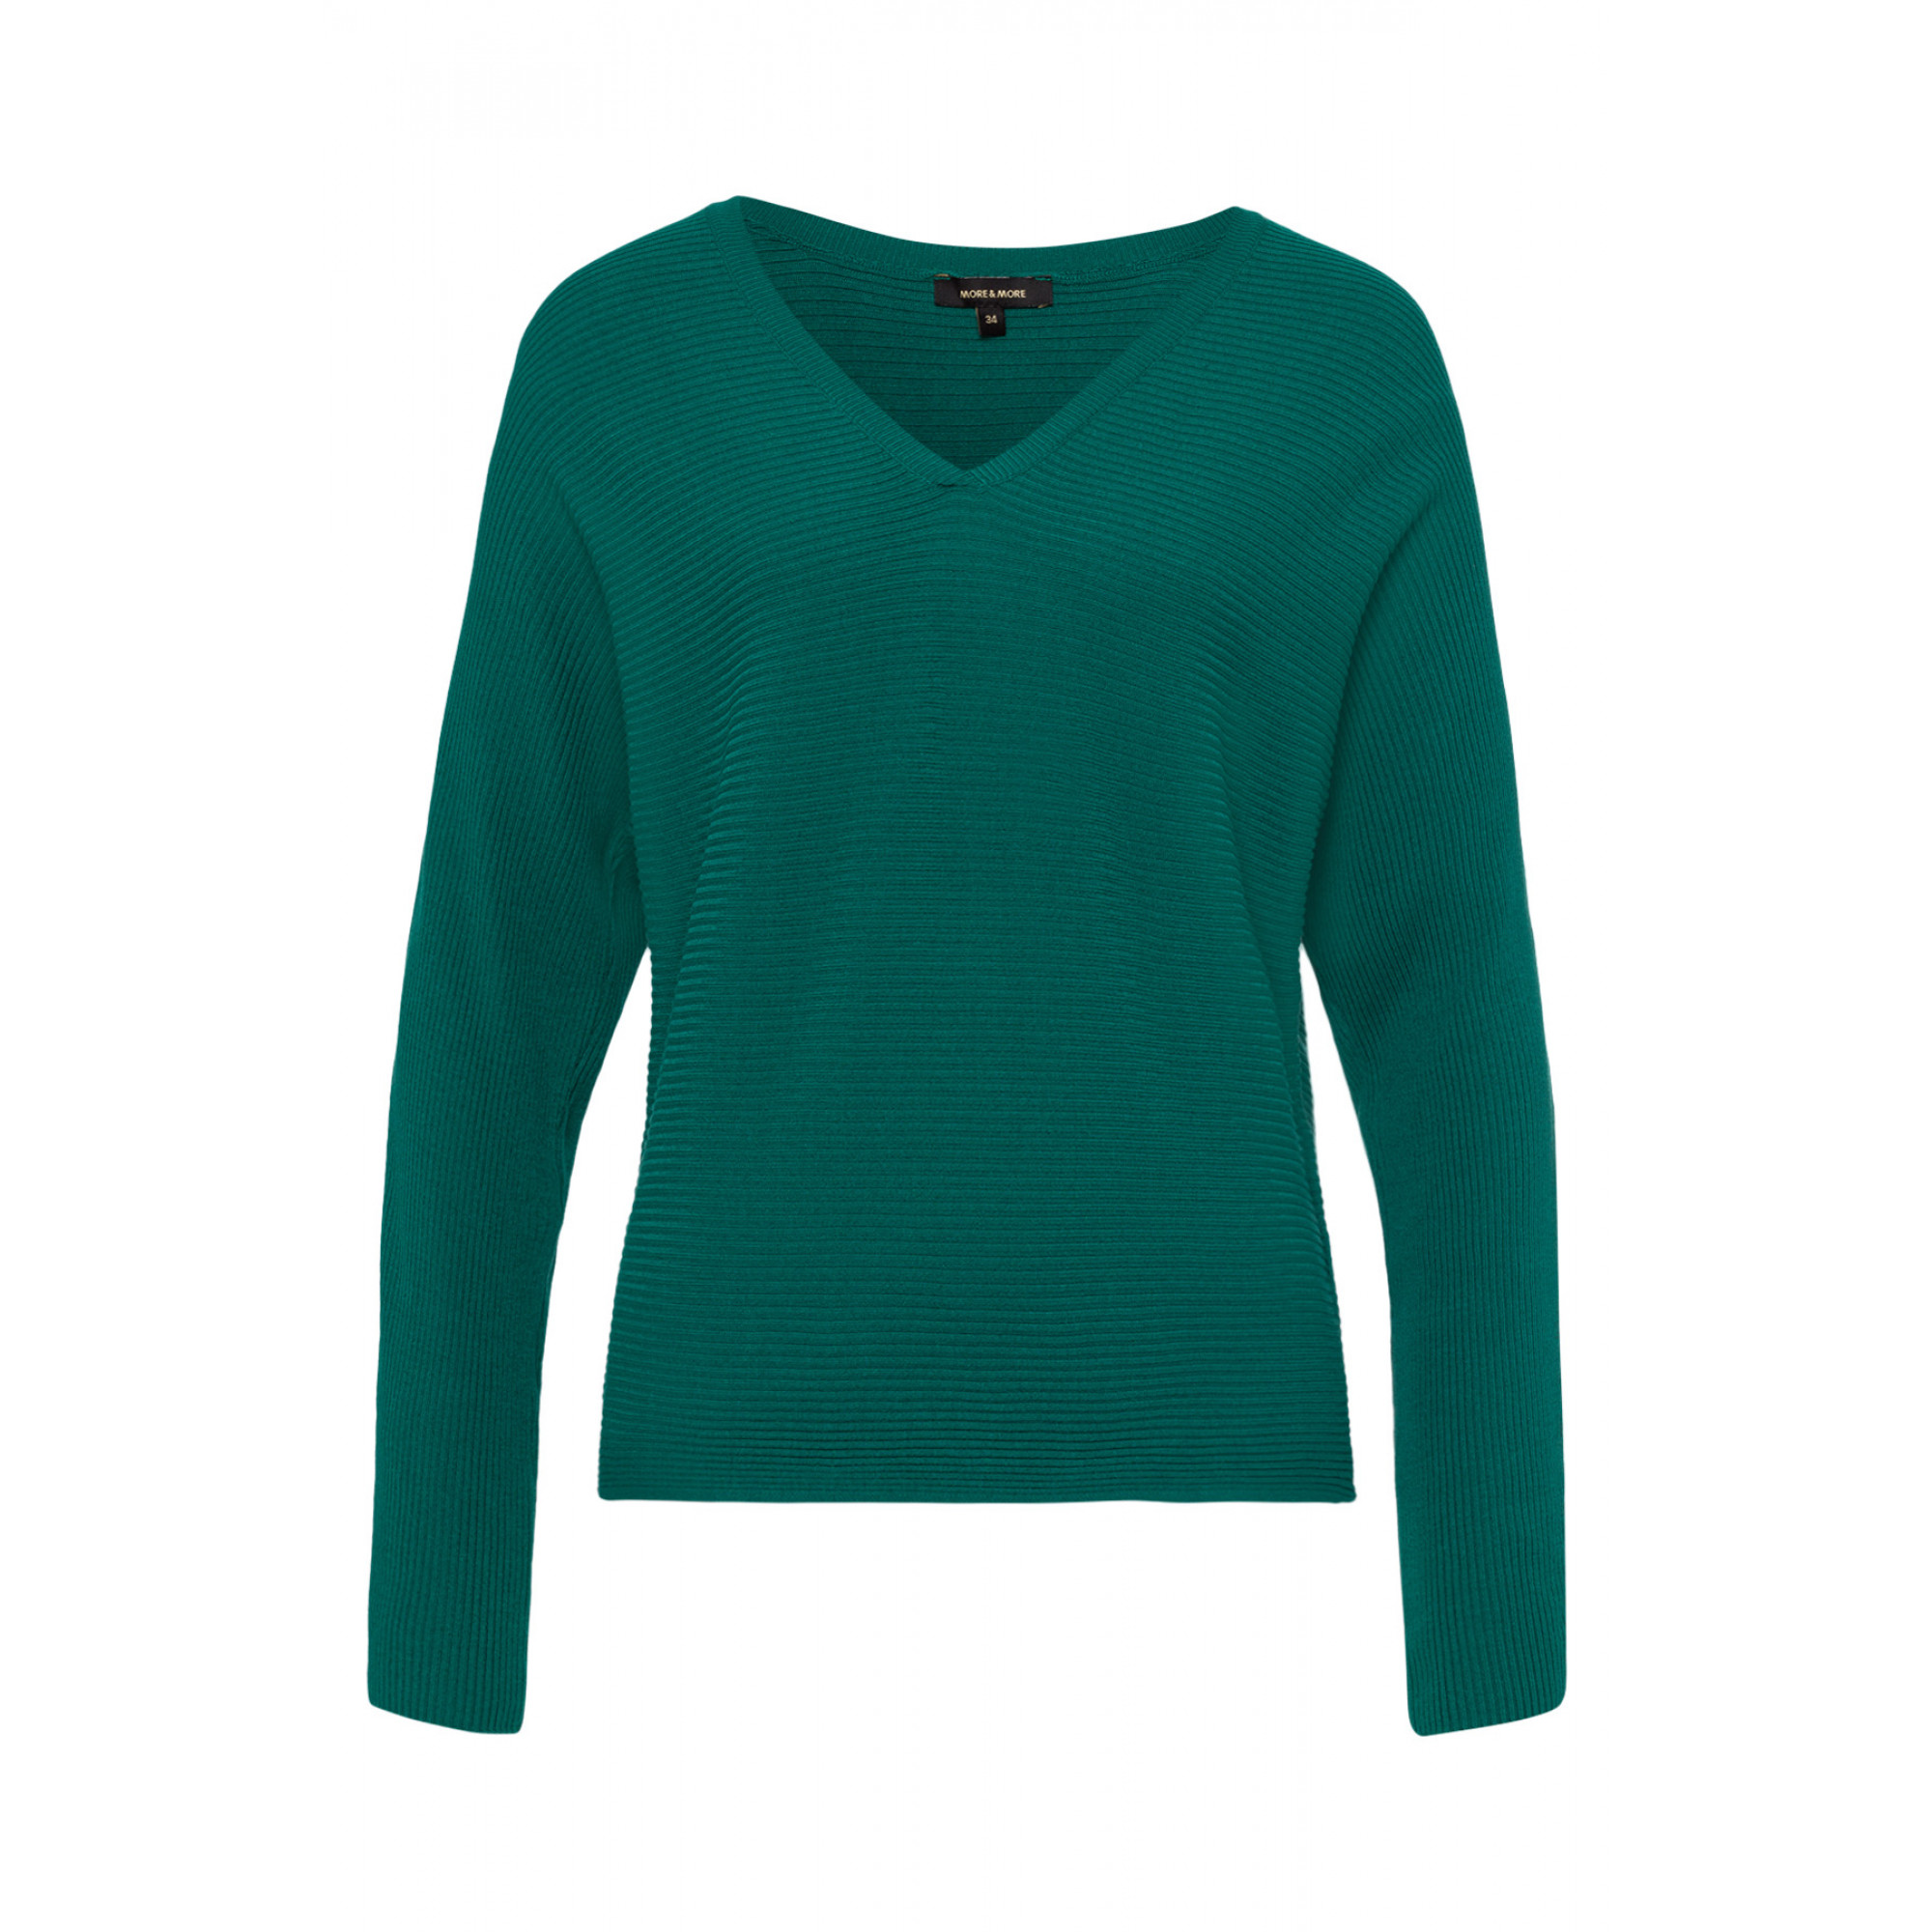 V-Neck Pulli, emerald green 91091002-0655 1